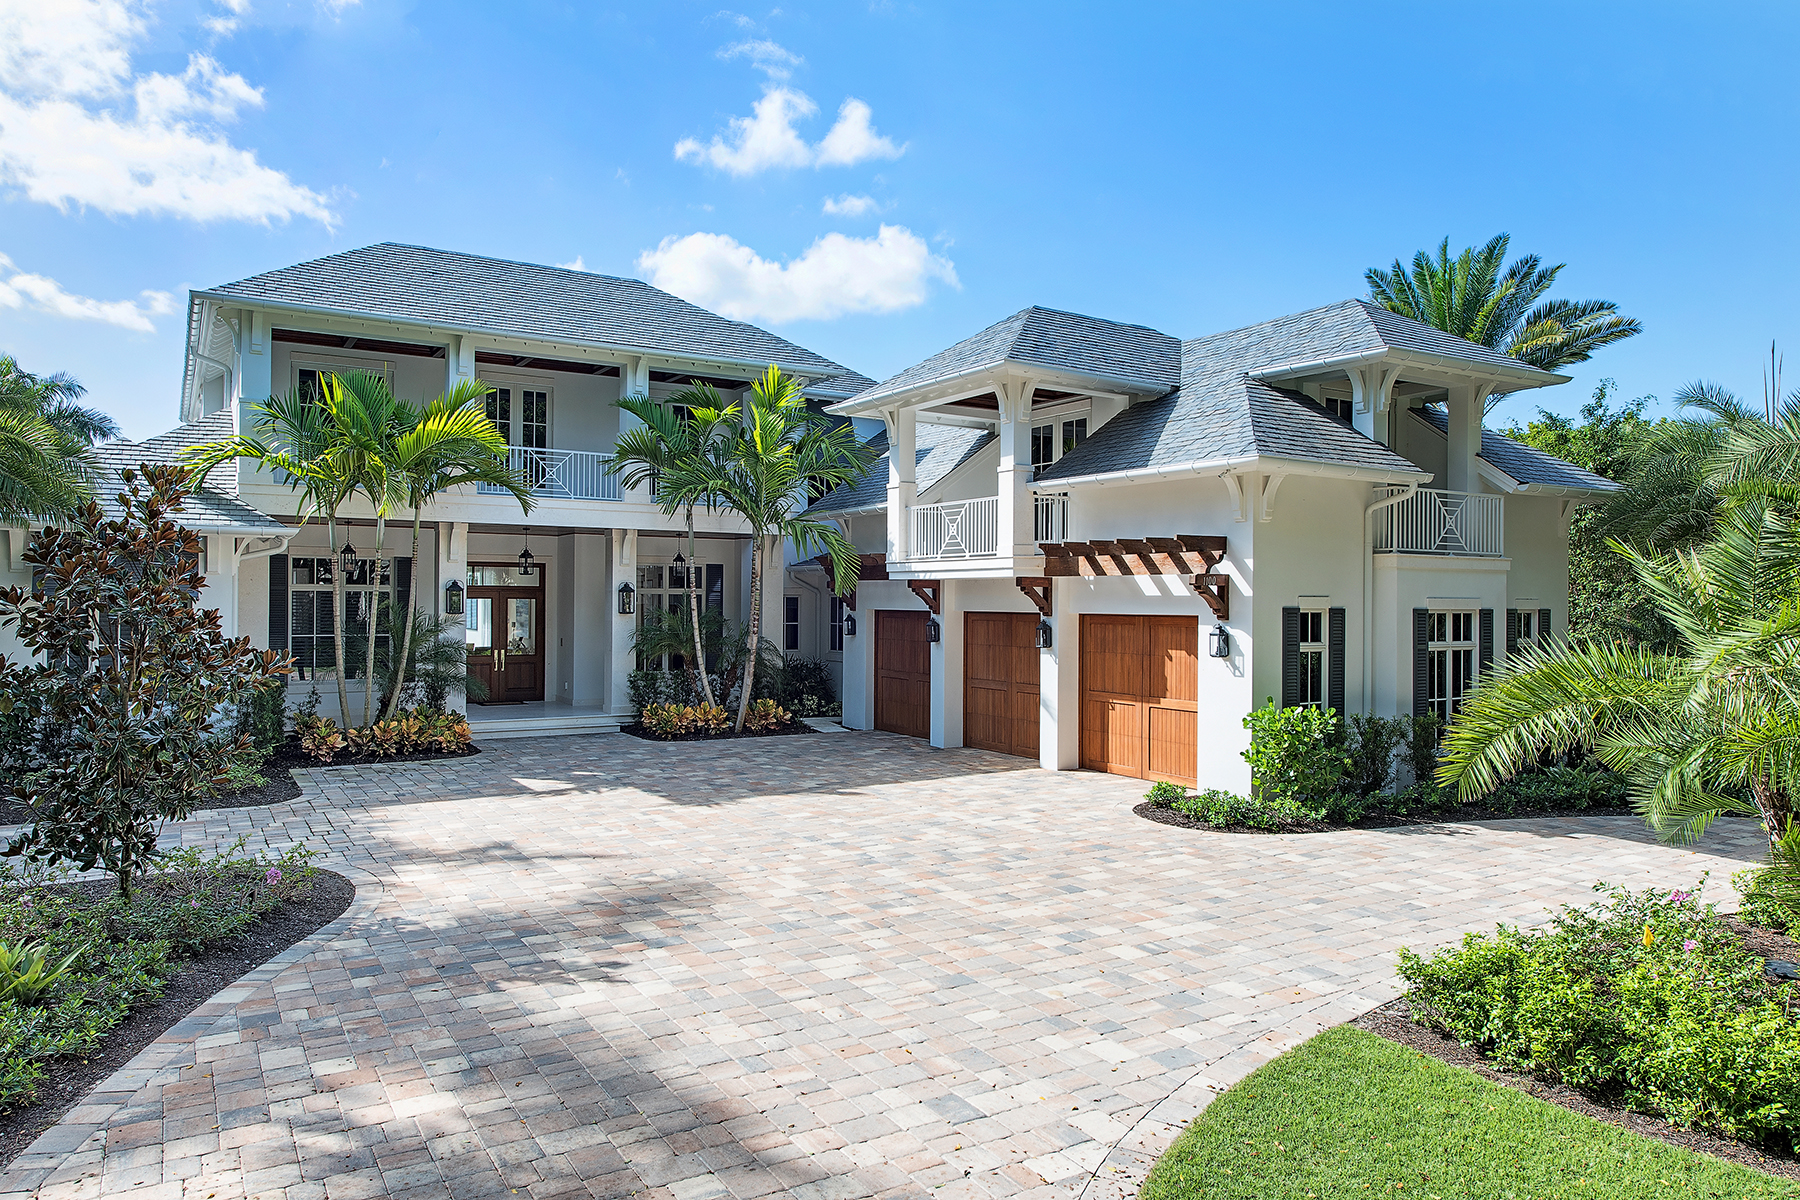 Maison unifamiliale pour l Vente à PORT ROYAL 1100 Galleon Dr Naples, Florida 34102 États-Unis